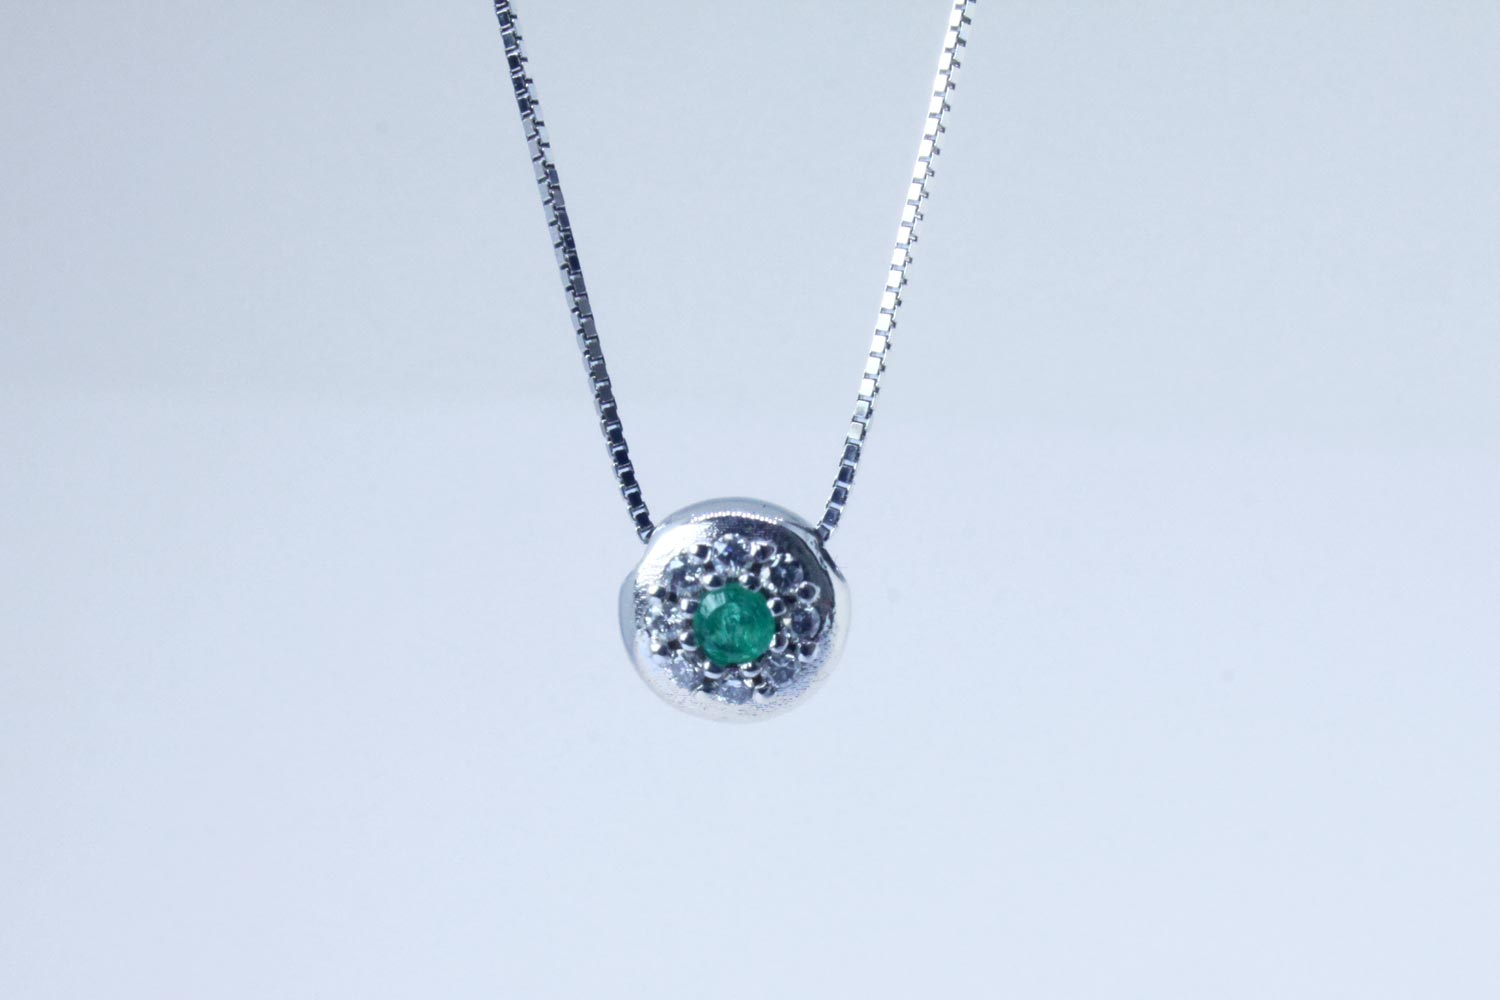 White gold pendant with diamonds and emerald Bold collection necklace 45-50 cm